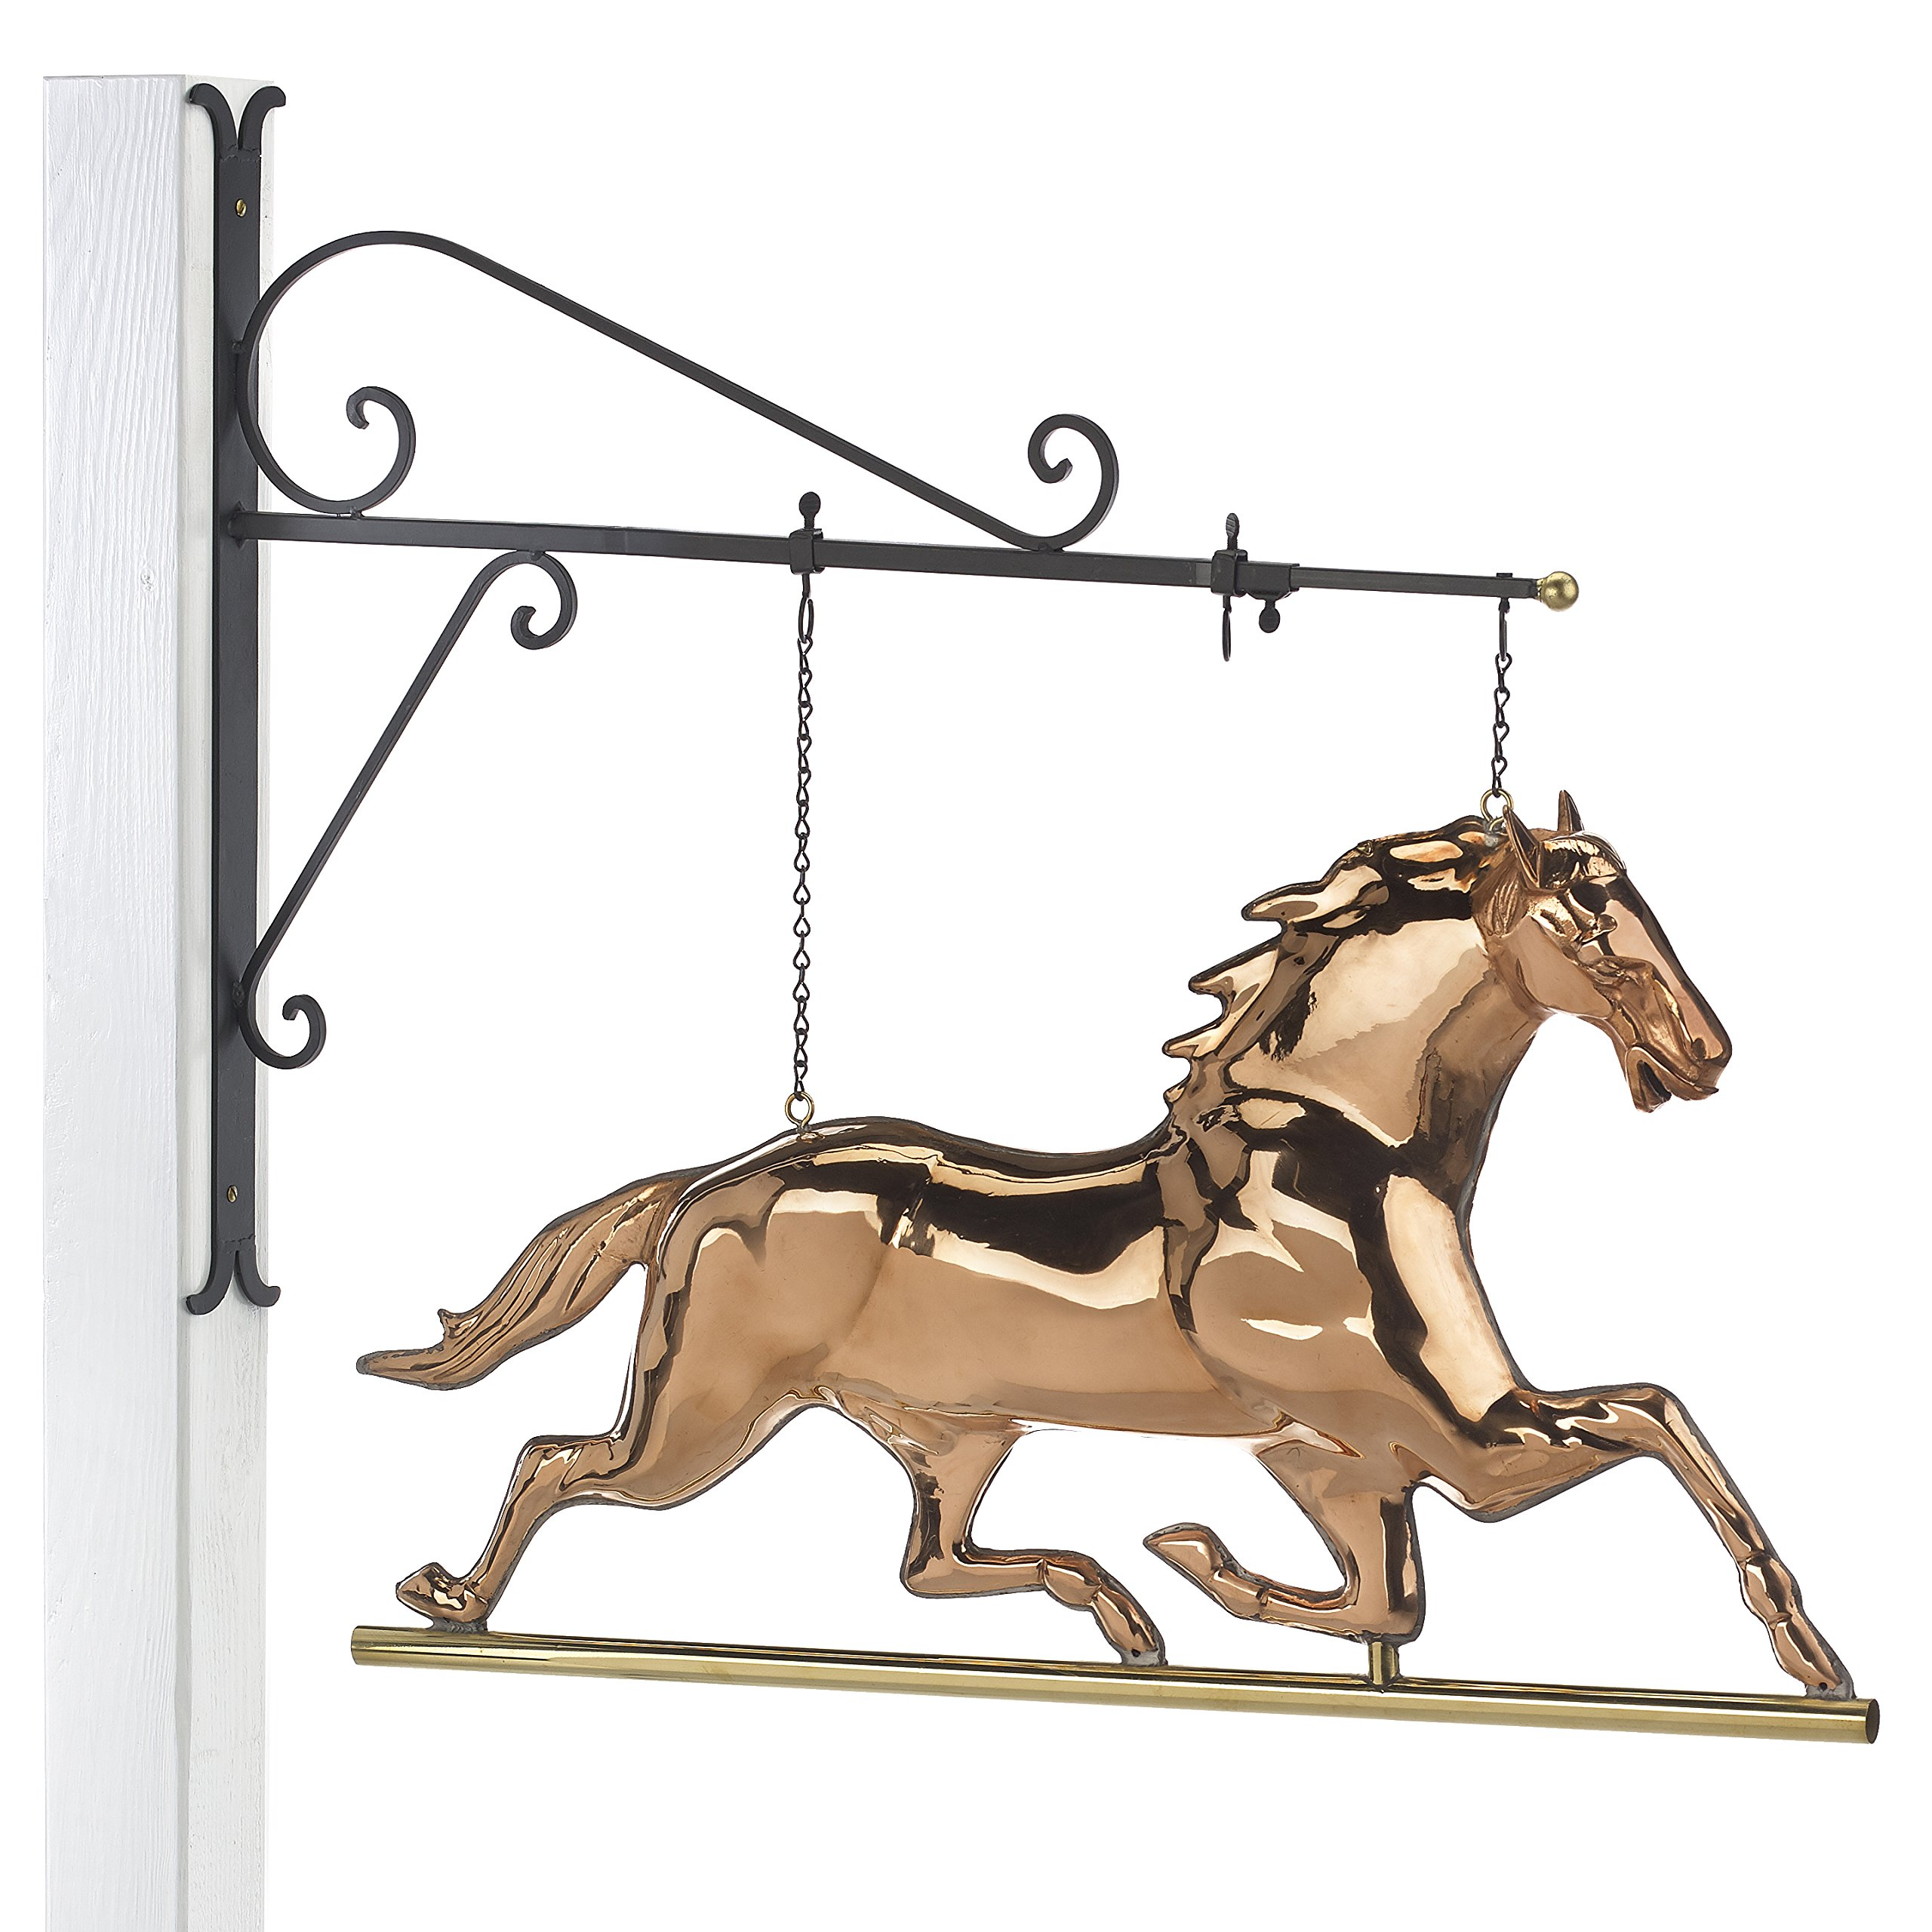 Good Directions Hanging Horse Pure Copper Weathervane Sign with Decorative Scroll Wall Bracket - Welcome Sign, Home / Entrance / Entryway Décor by Good Directions